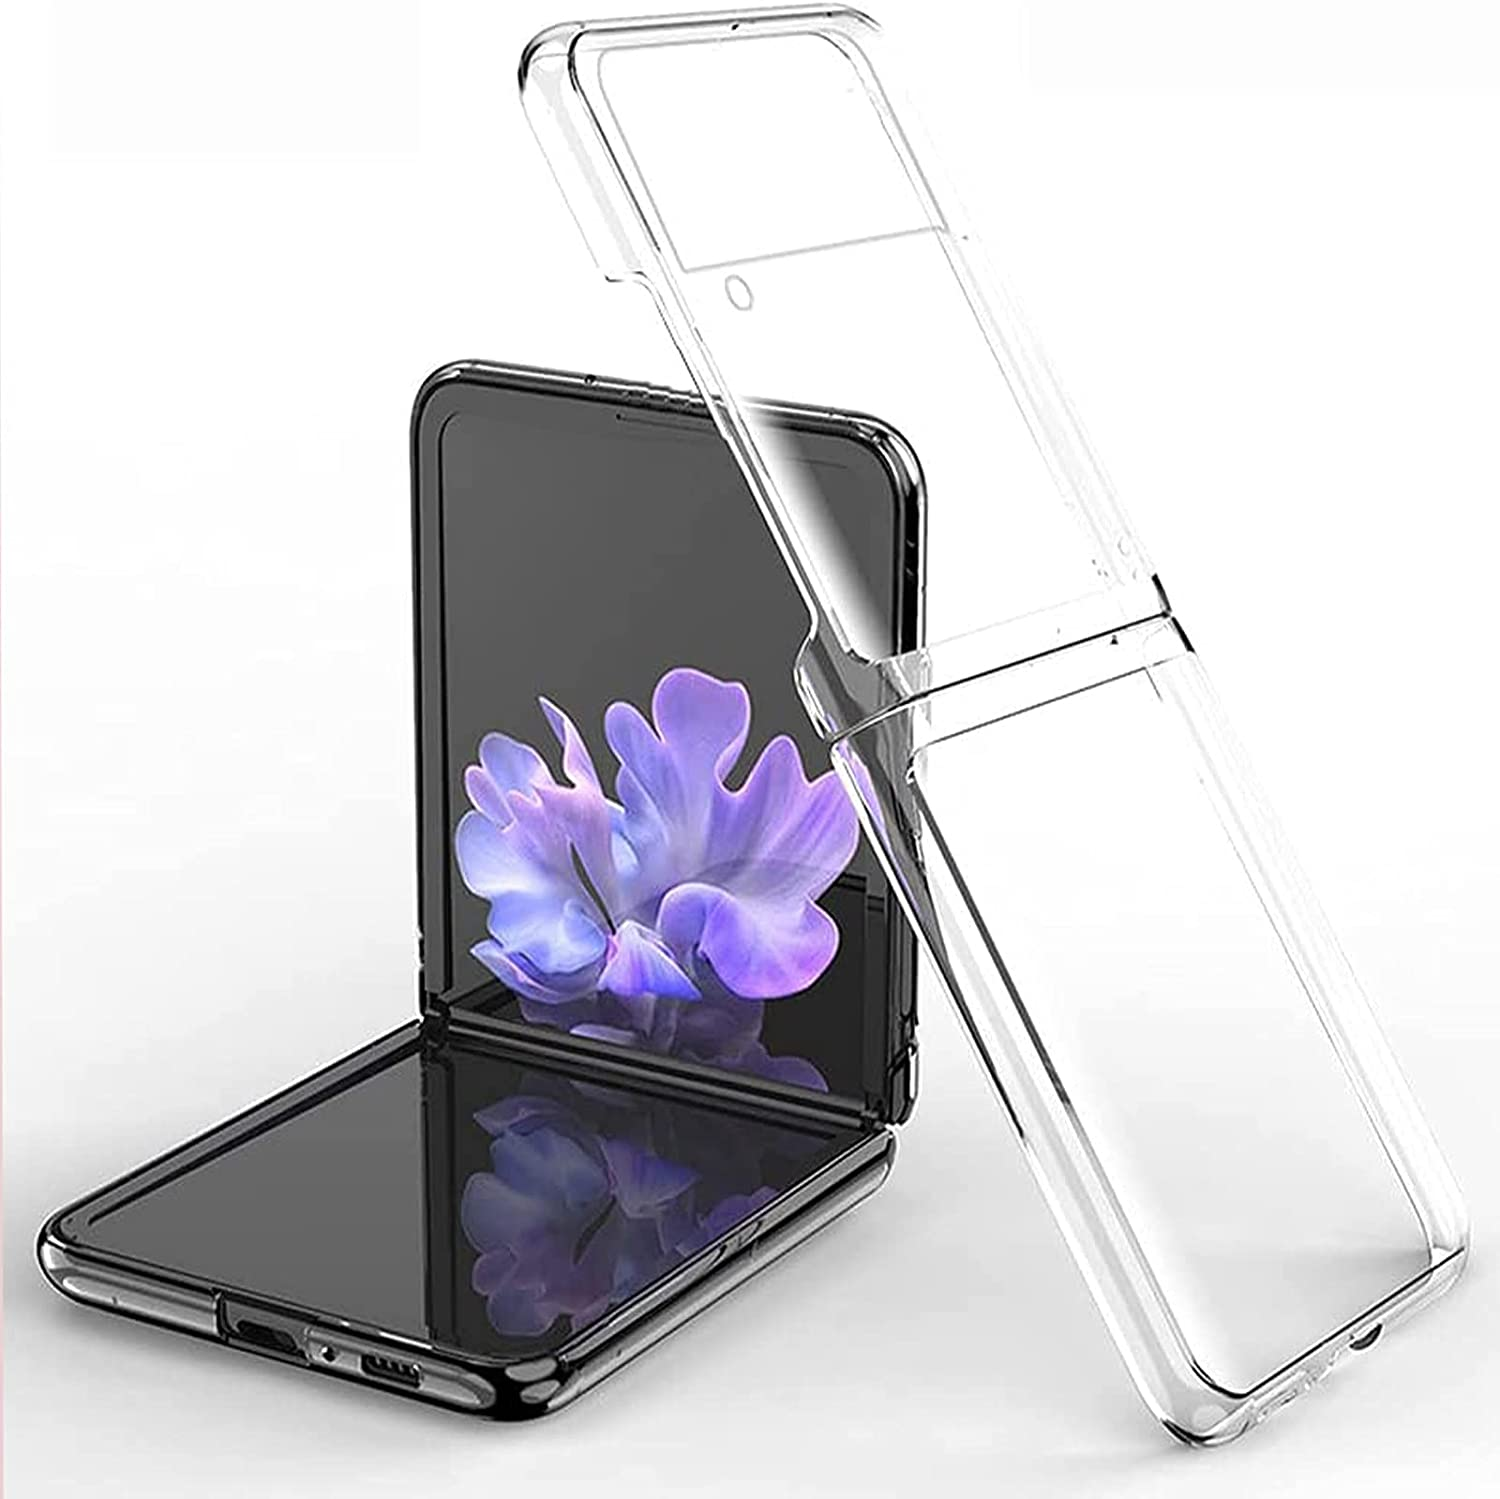 for Samsung Galaxy Z Flip 3 Case, Clear 360° Full Protection Ultra-Thin Crystal Hard PC Bumper Anti-Scratch Waterproof Cover Case, Shookproof Case for Samsung Galaxy Z Flip 3 5G (Full Clear)